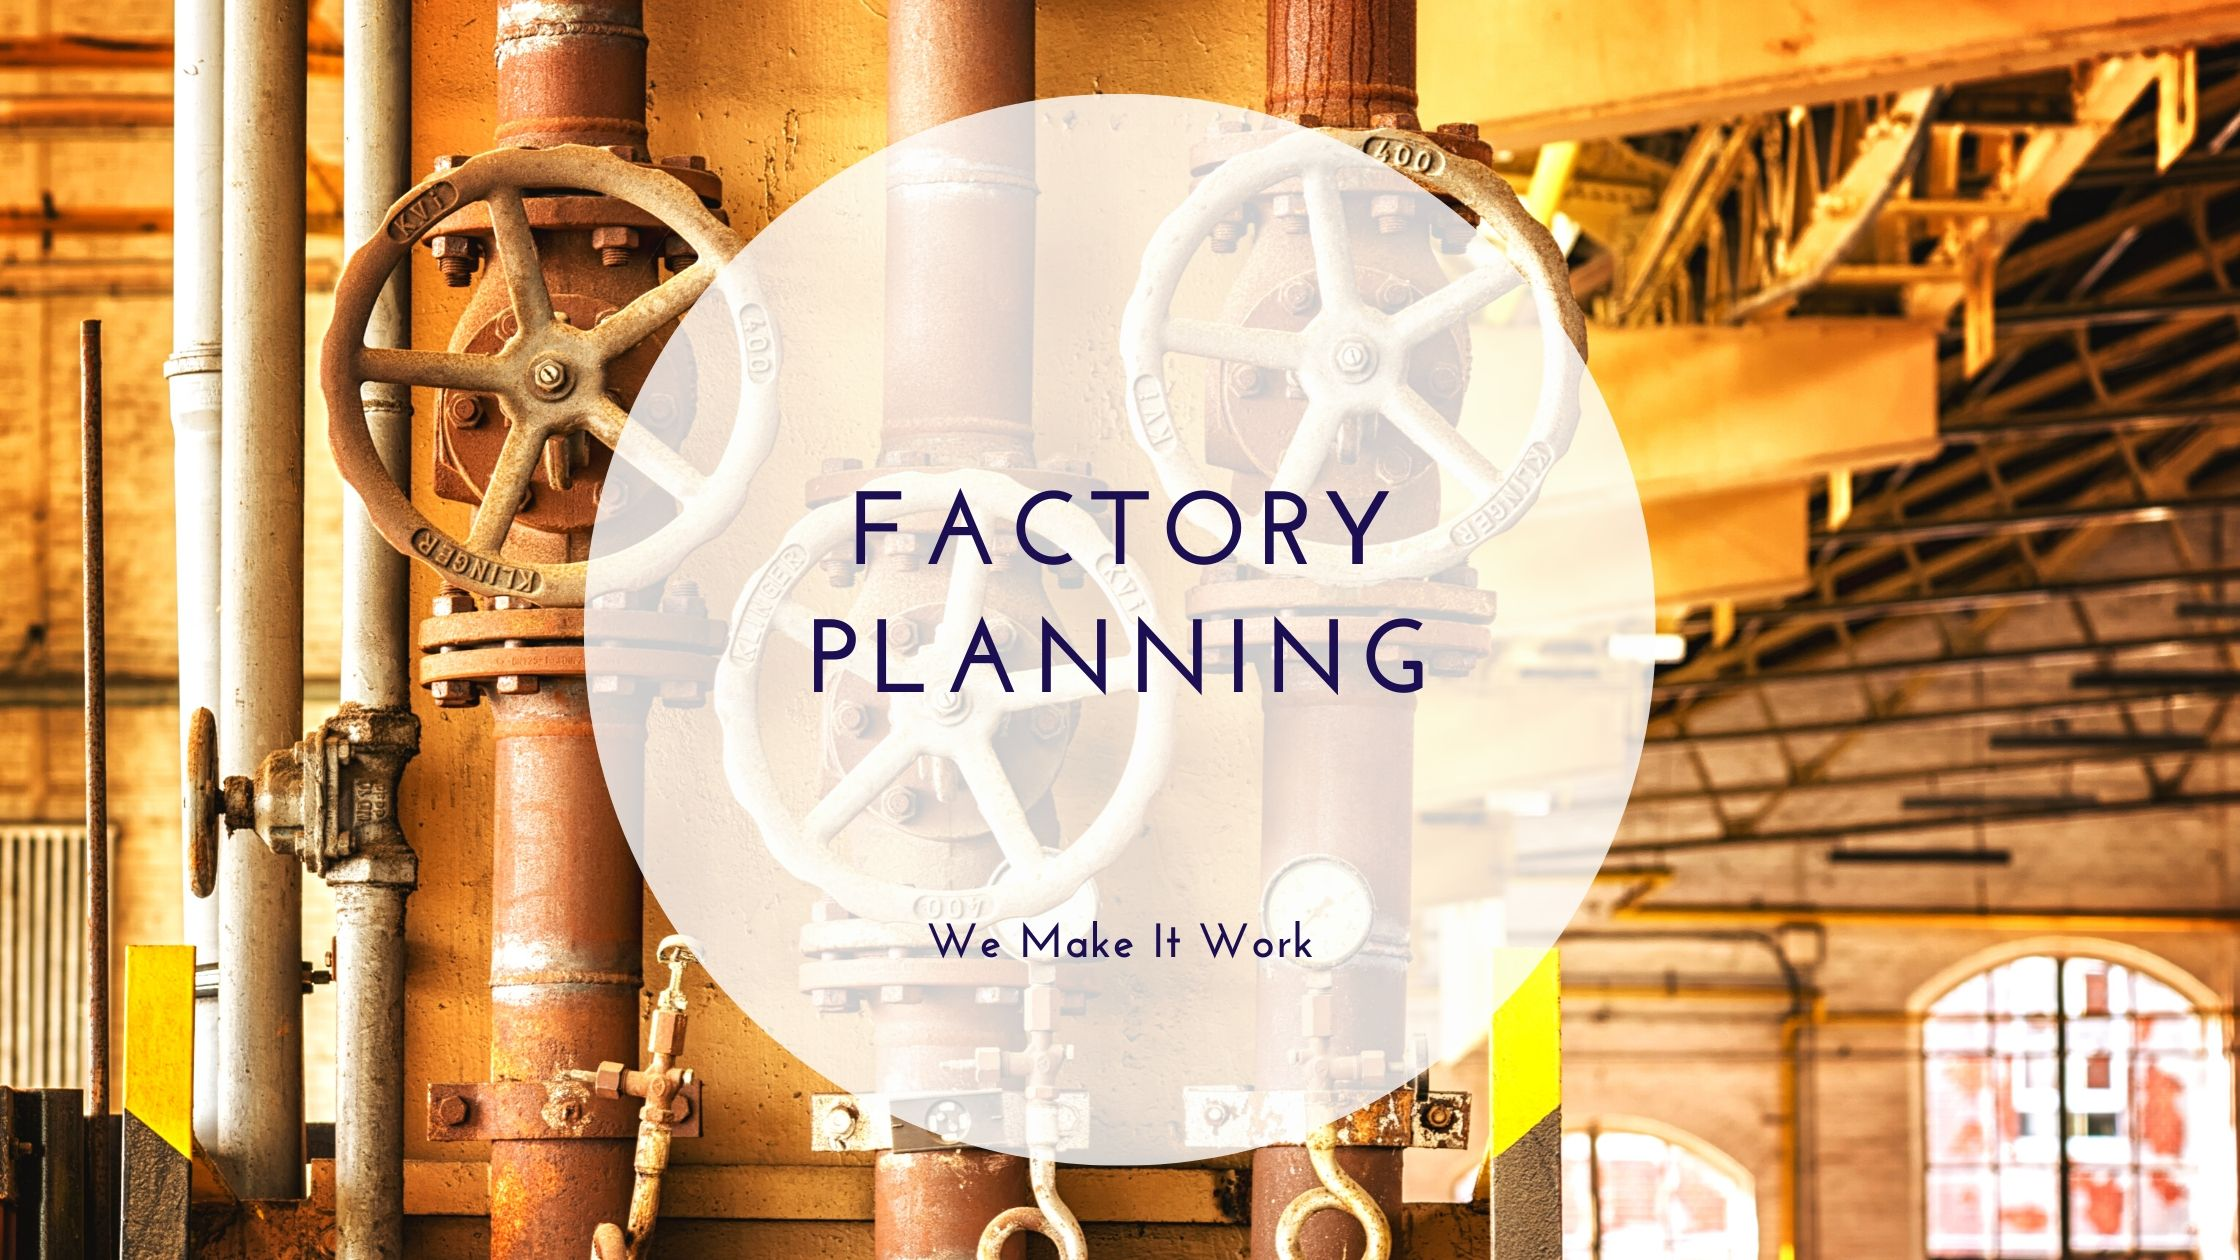 The Factory Planning | YGL ERP4.0 software